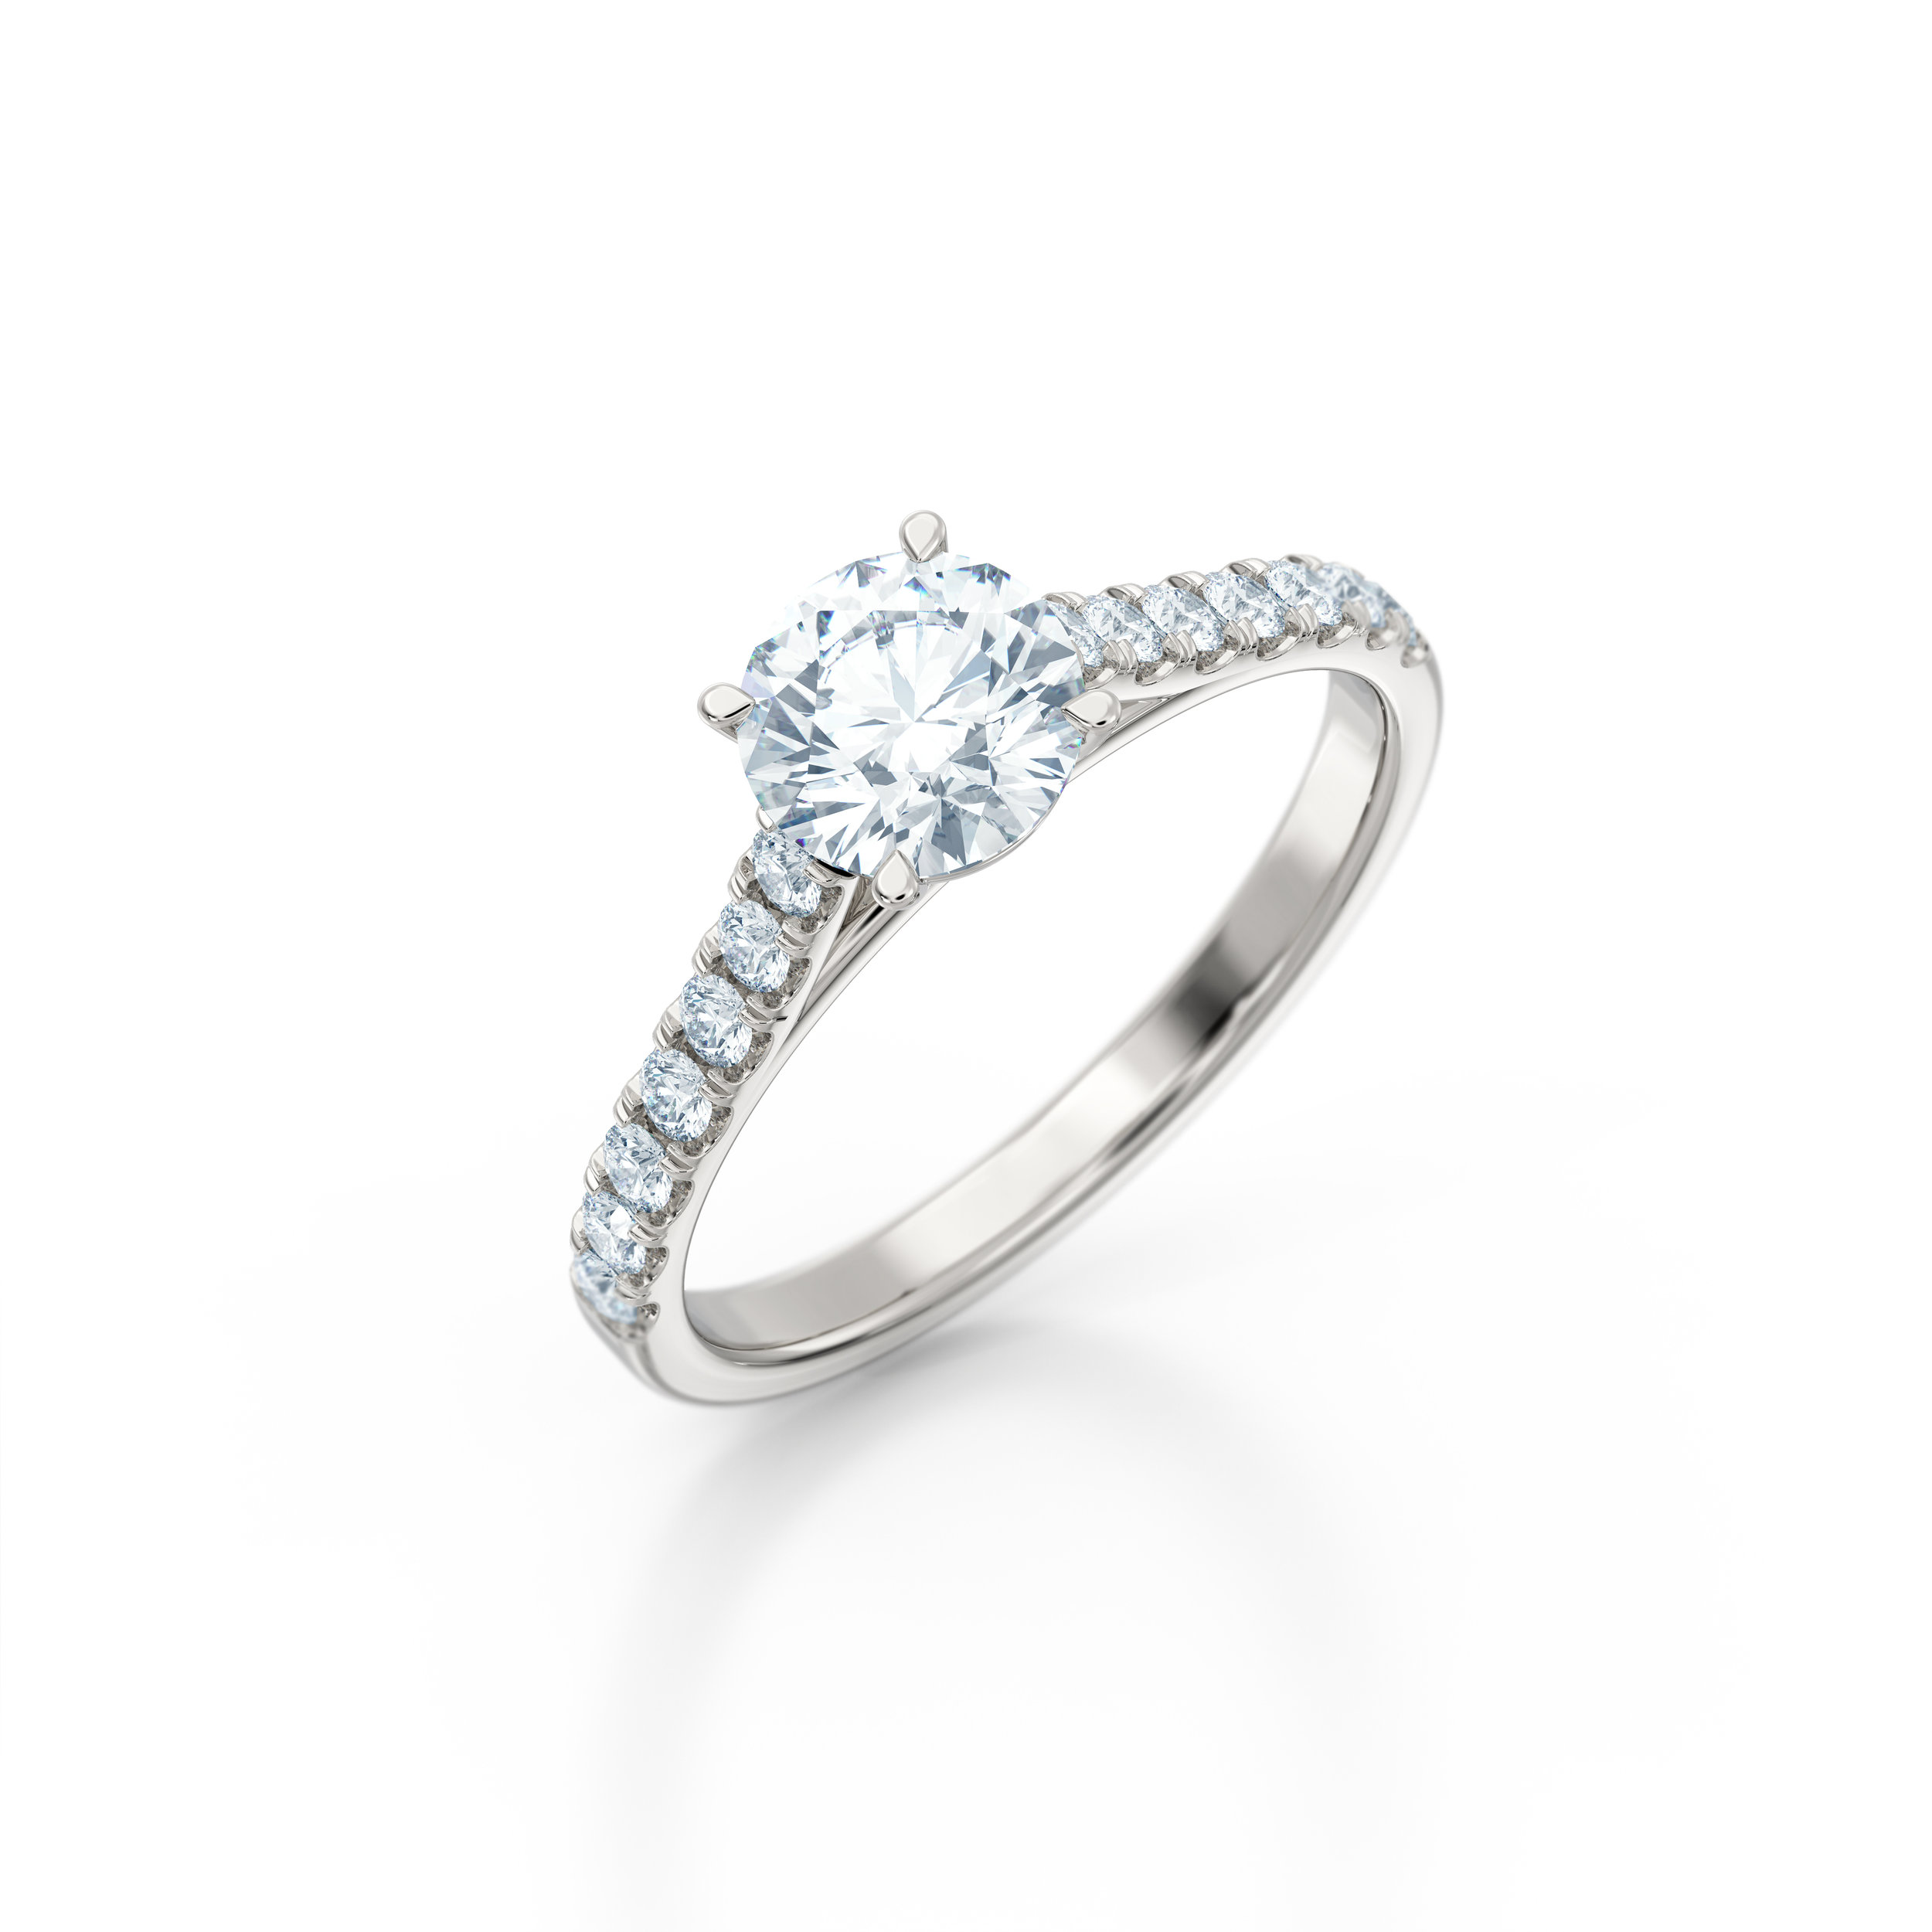 Brilliant cut diamond shoulder engagement ring | Hatton Garden